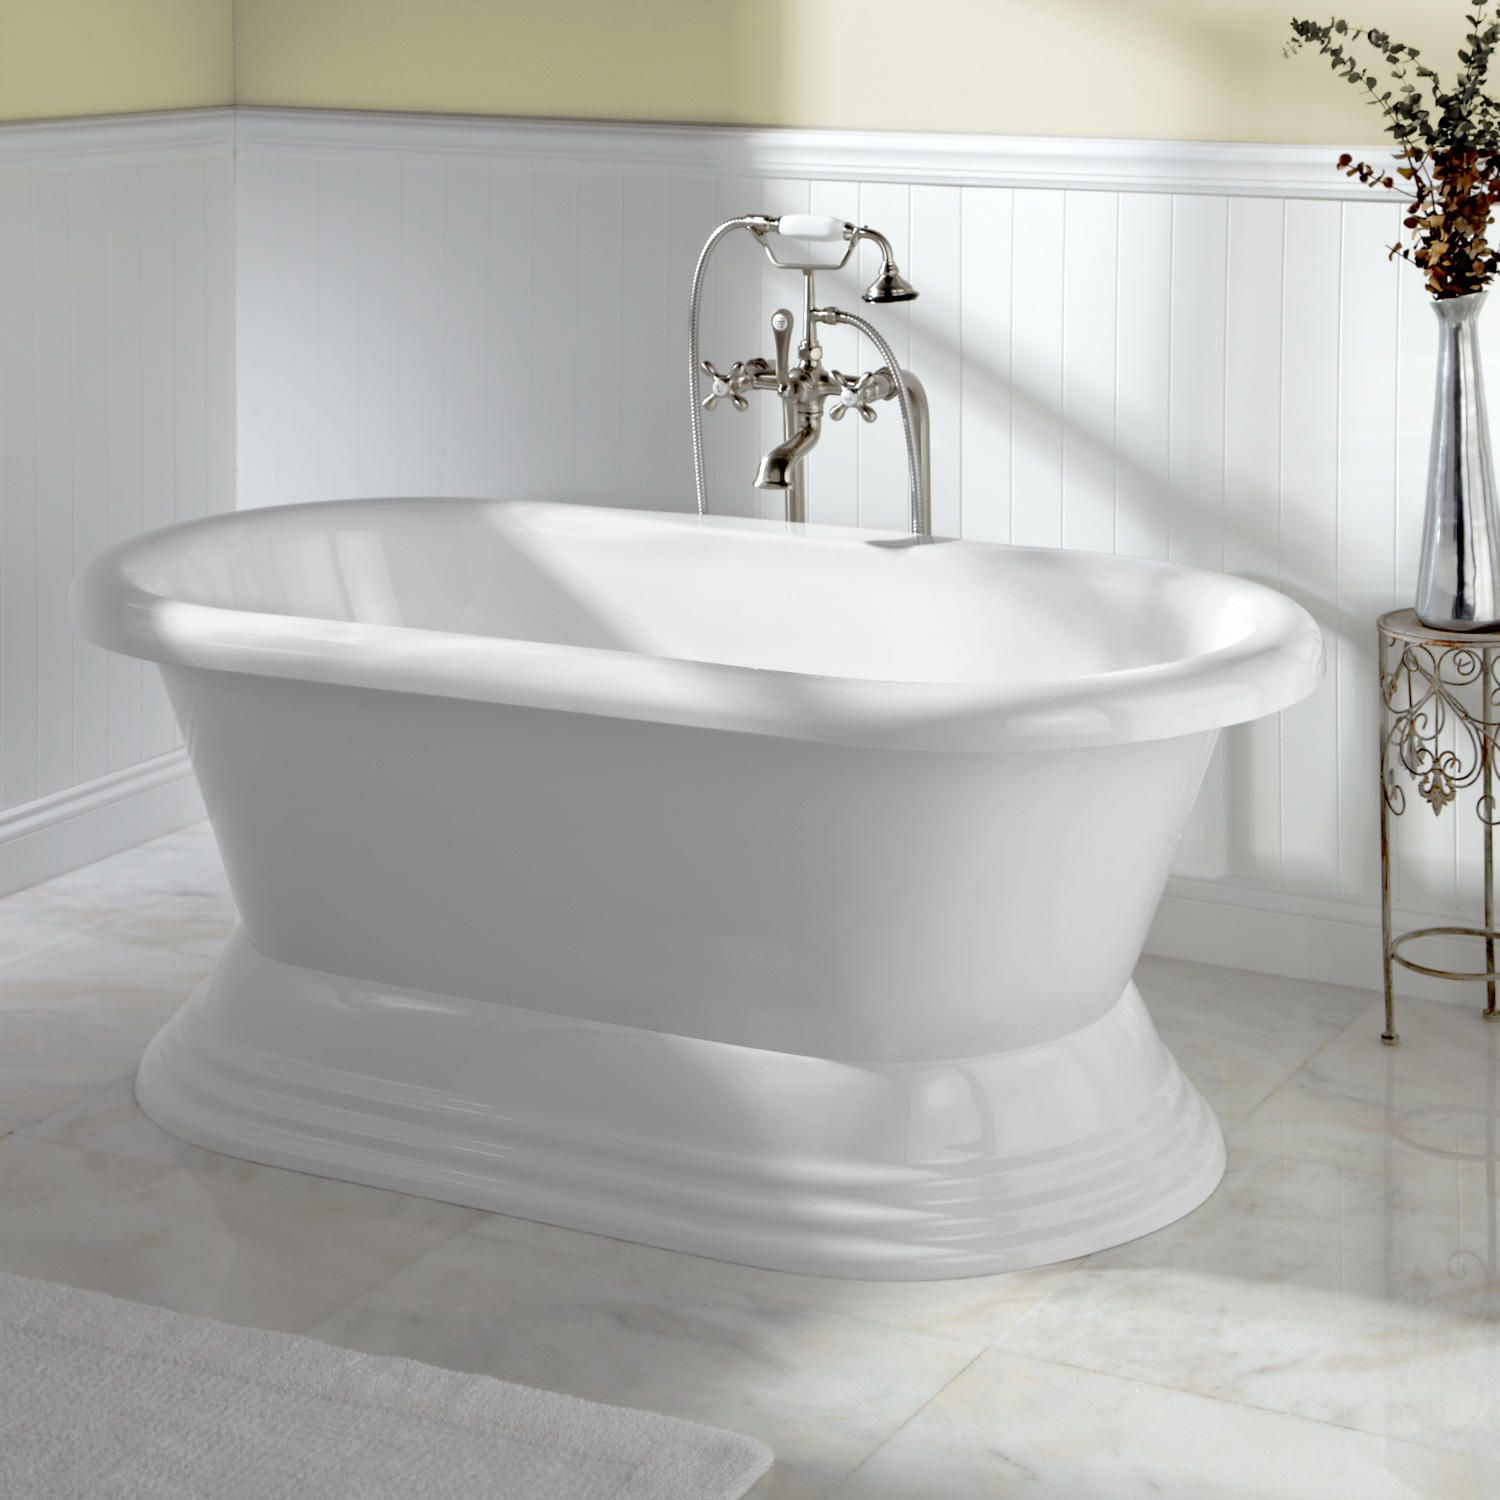 small freestanding tubs in small bathroom ideas | Stand alone ...